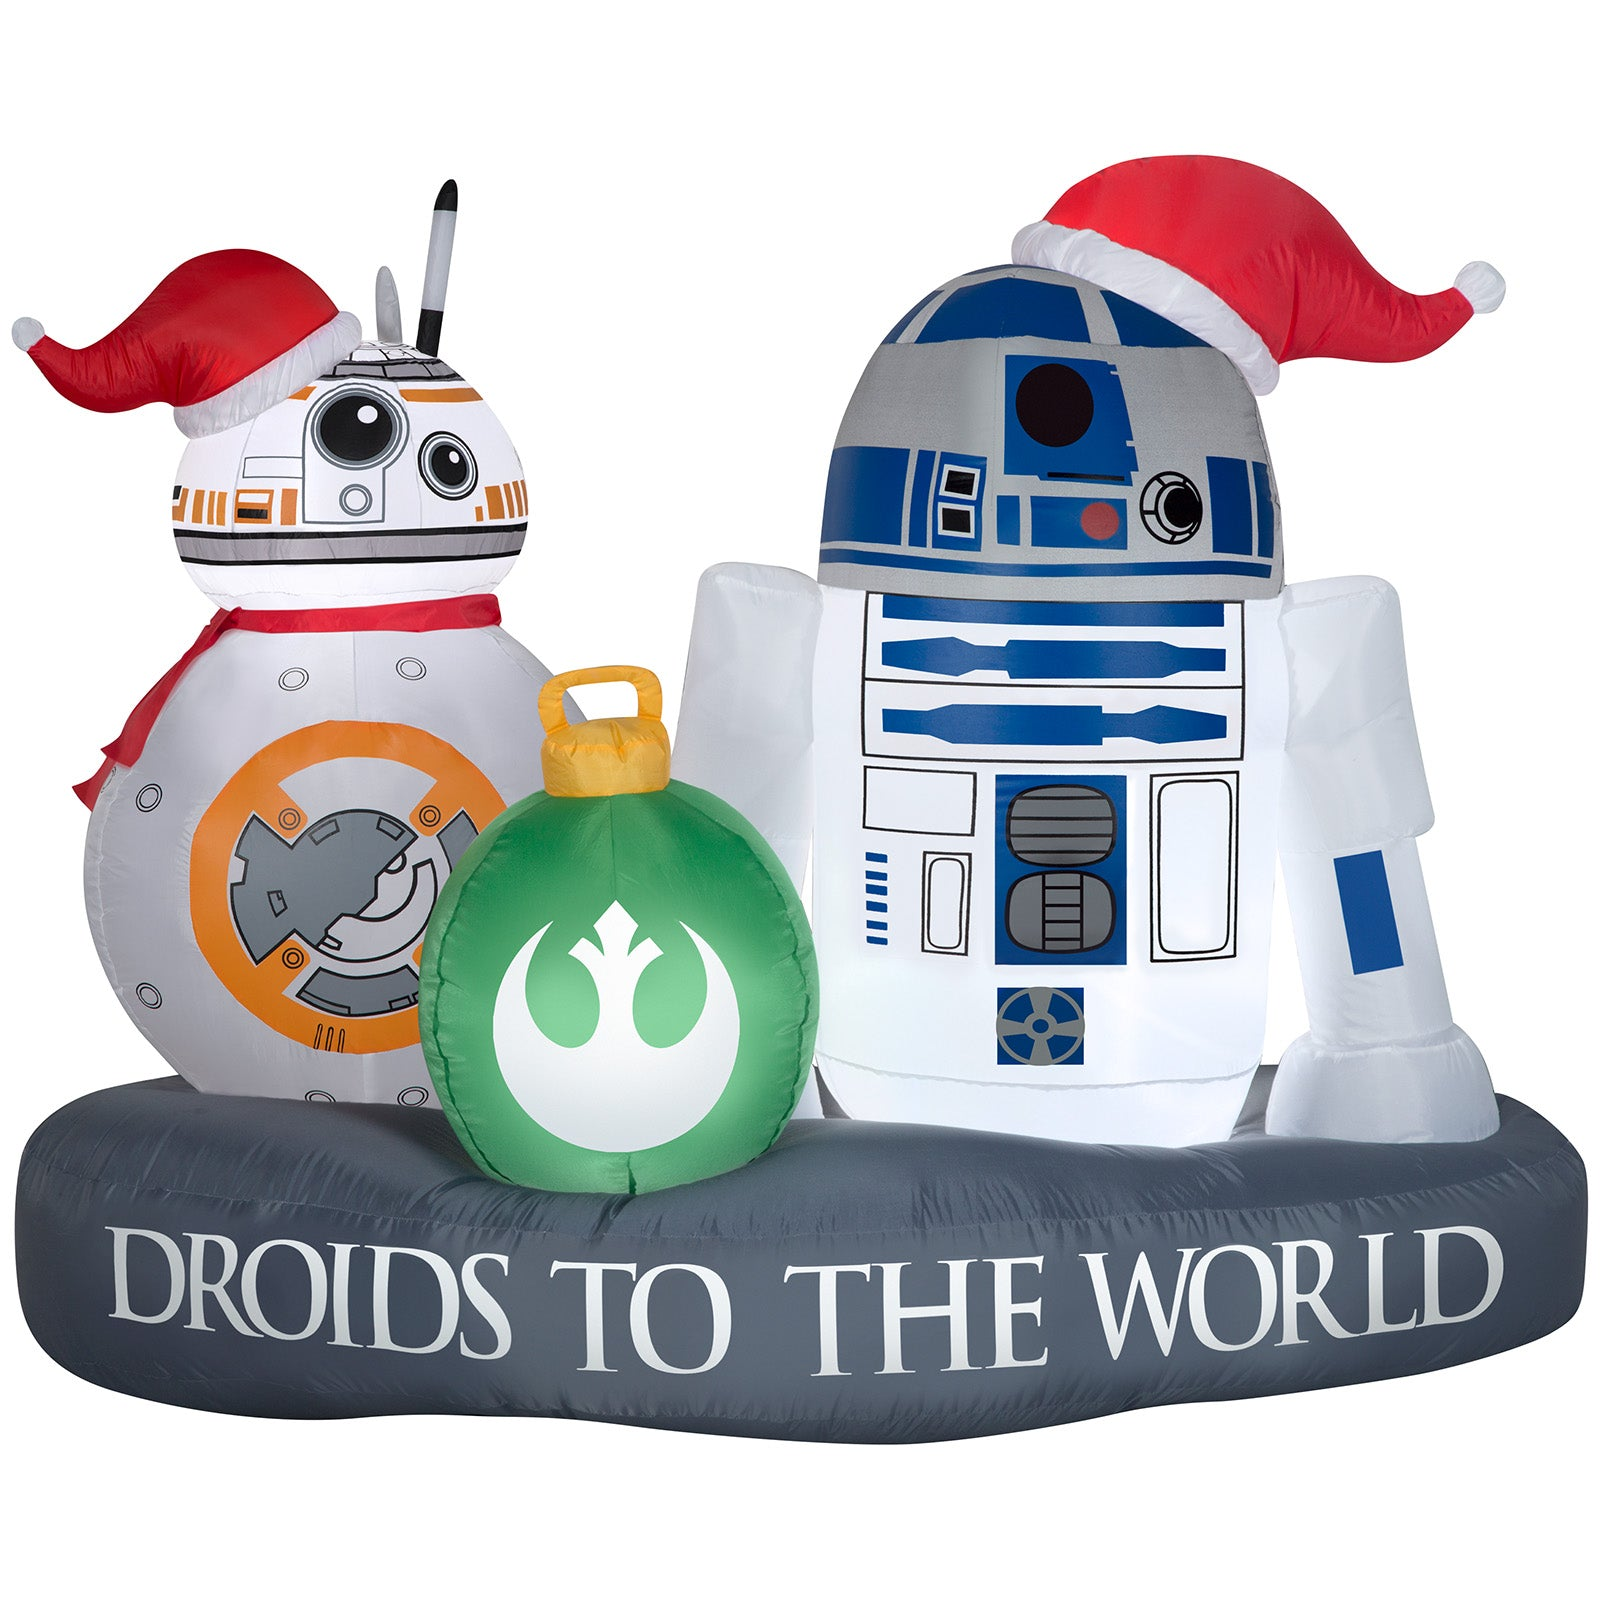 5' Wide Airblown Stylized R2-D2 and BB-8 Droid to the World Scene Star Wars Christmas Inflatable